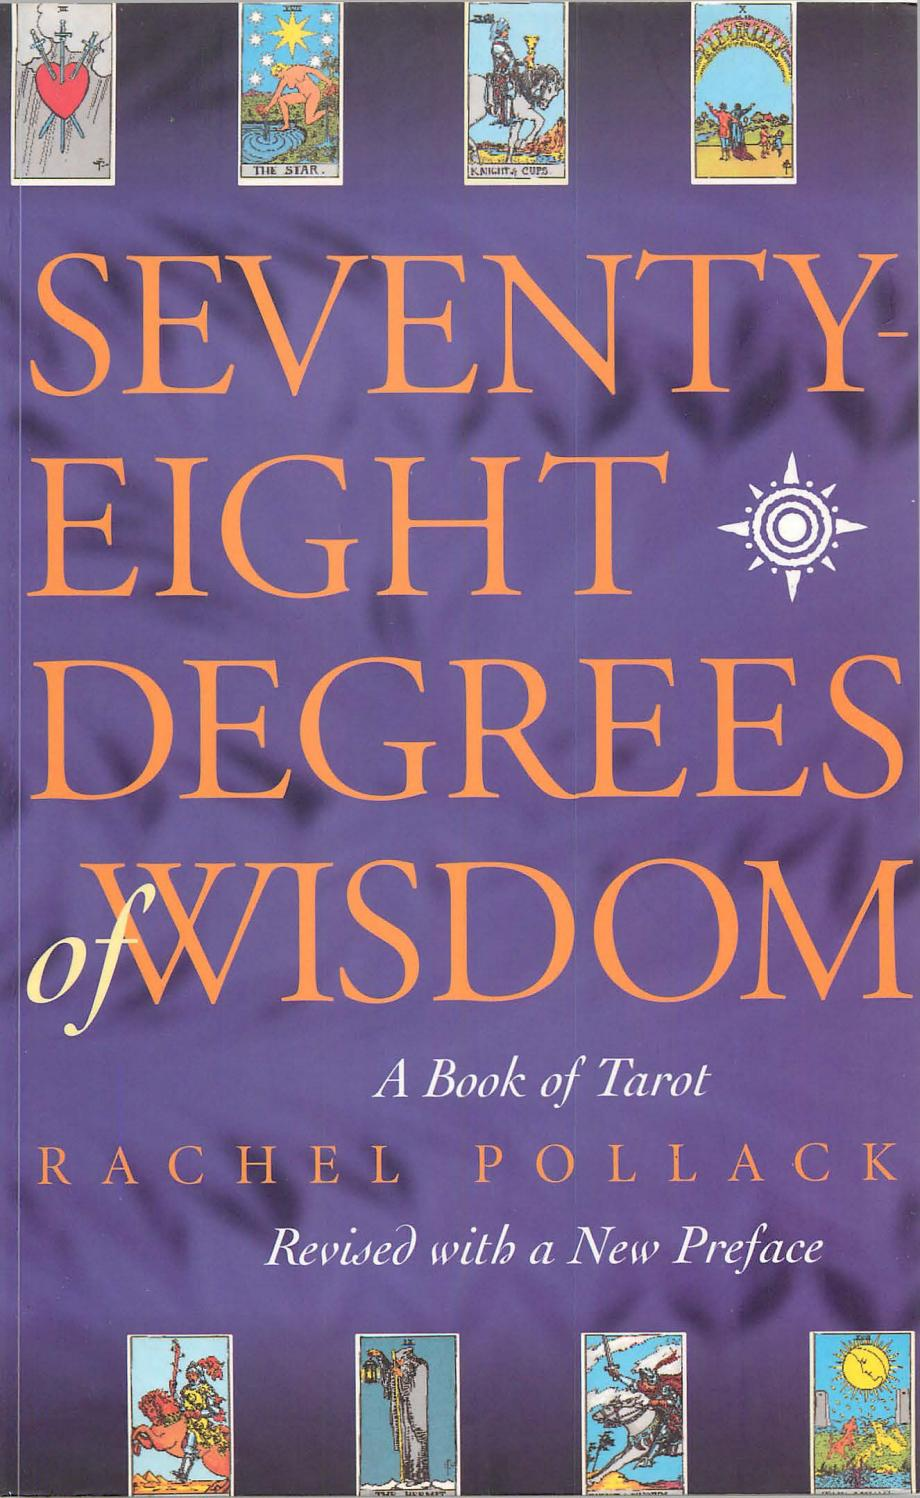 Seventy eight degrees of wisdom a book of tarot revised